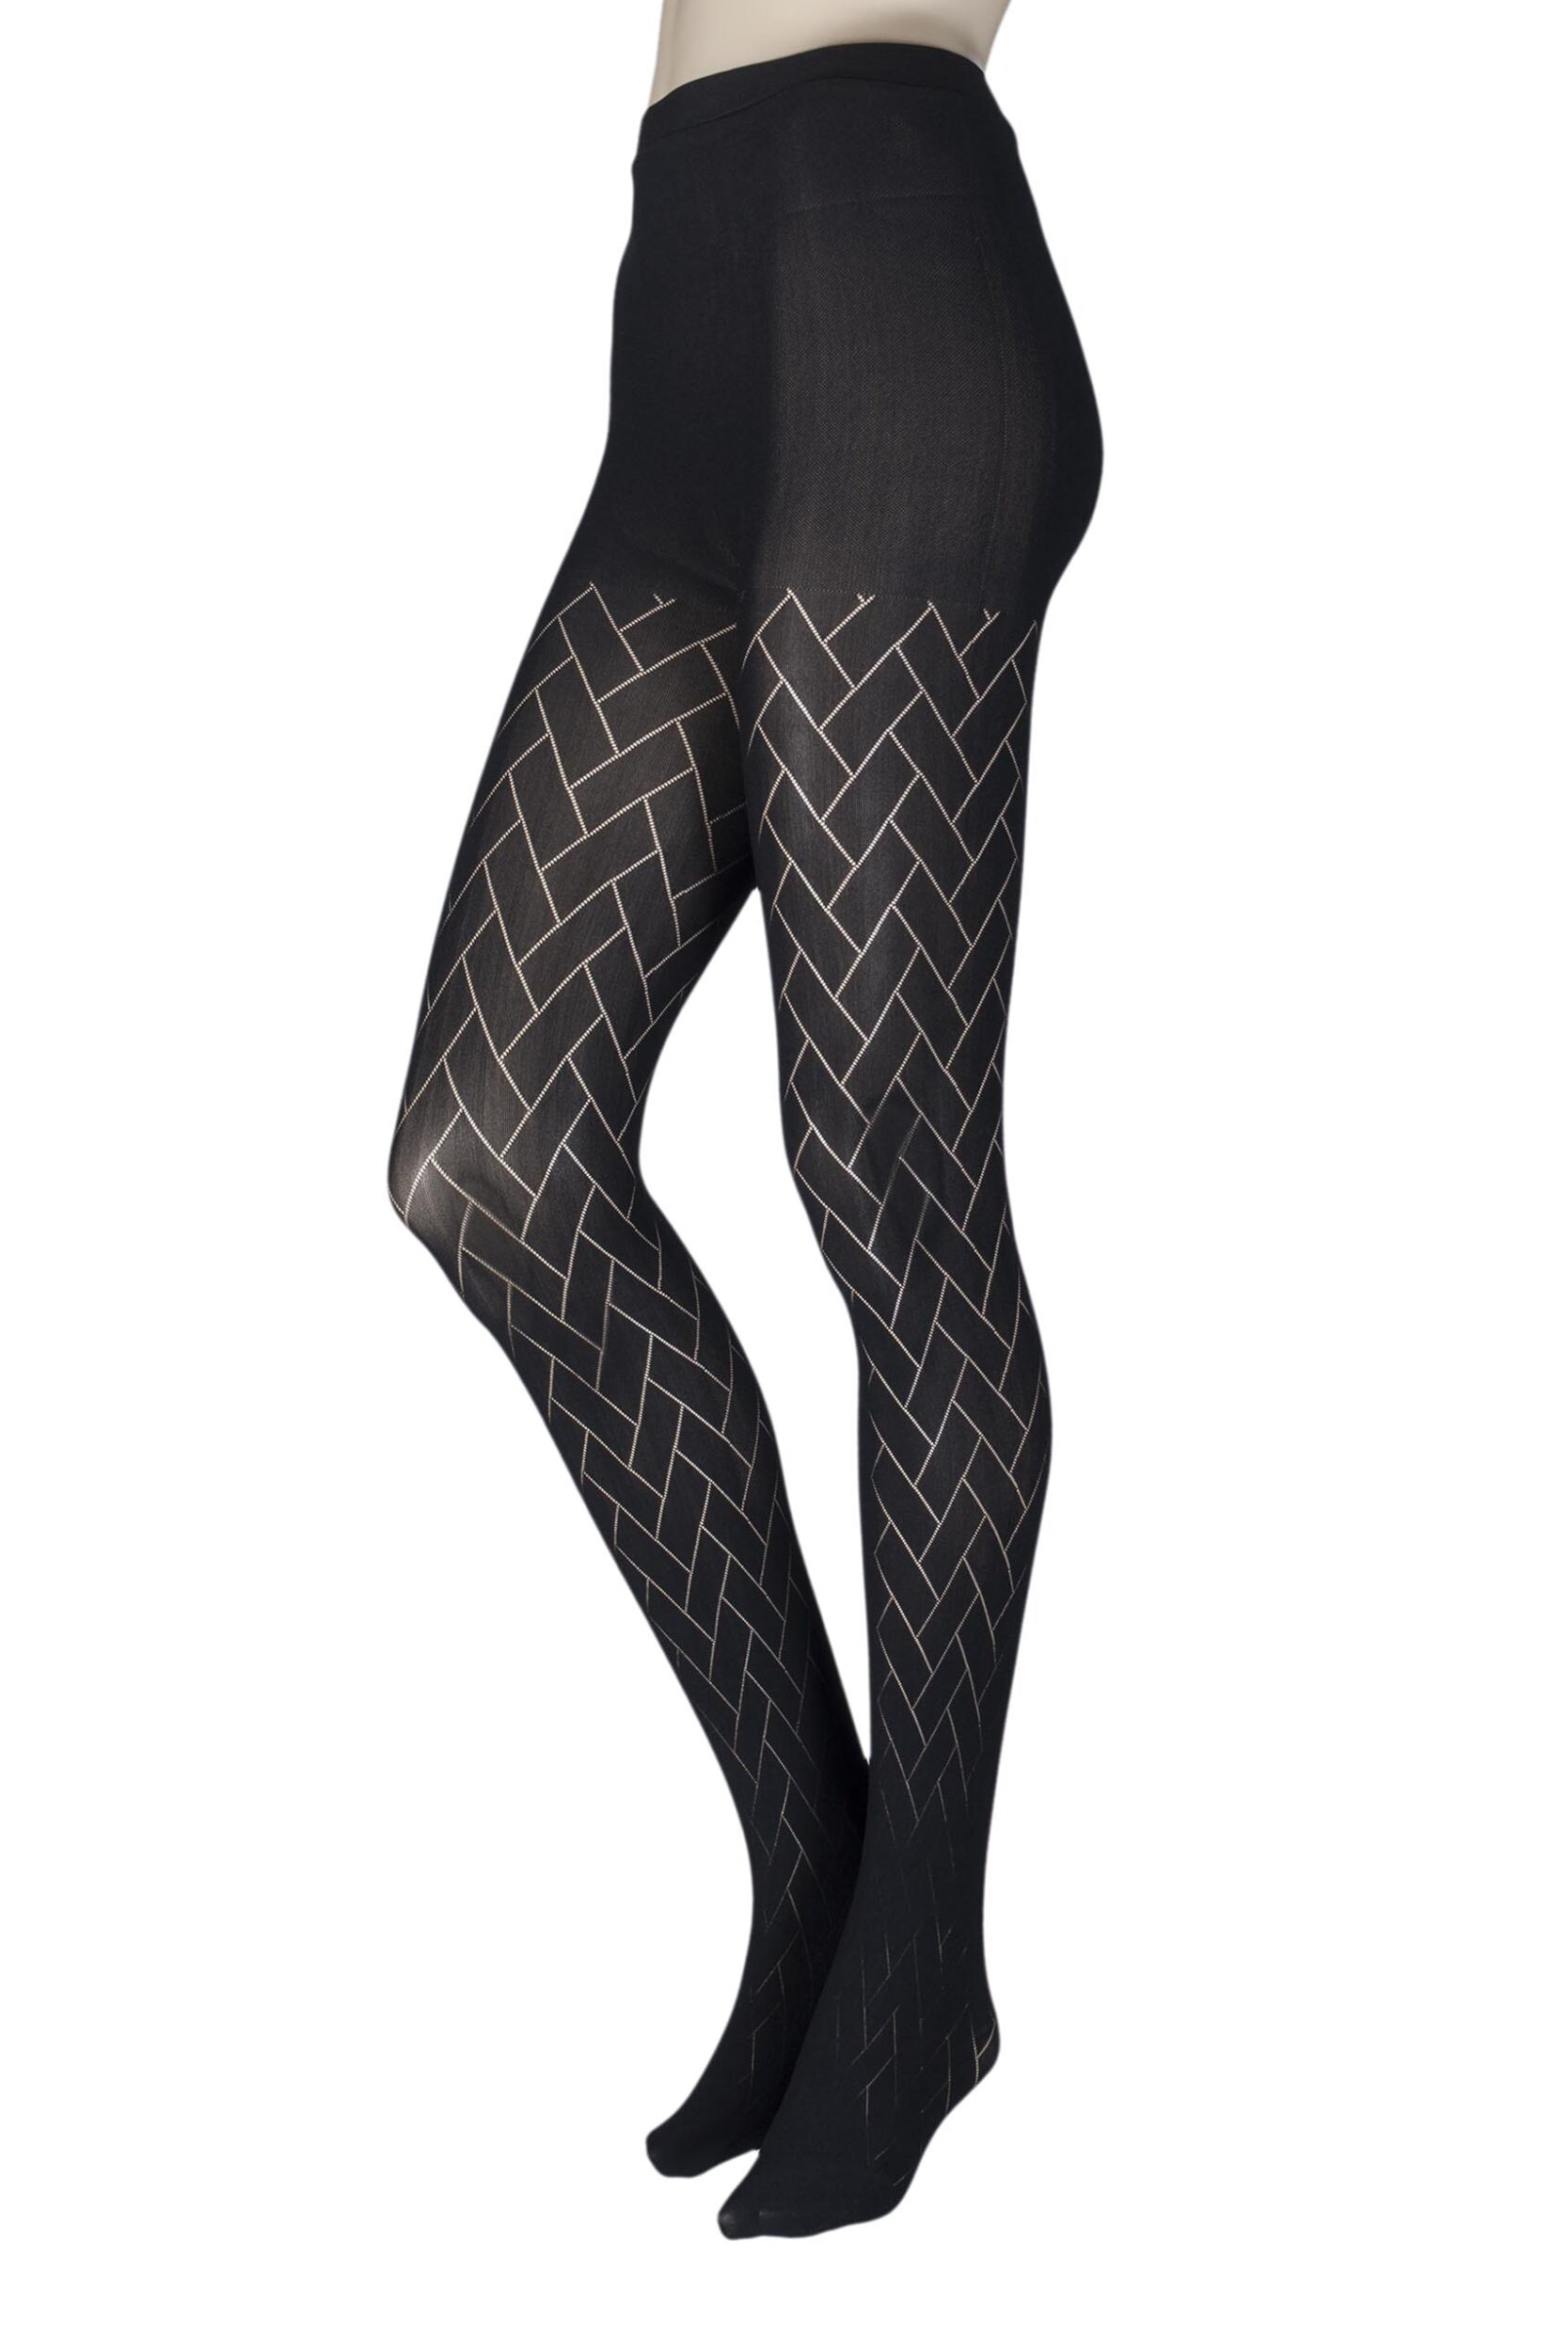 1 Pair Couture By Silky Ultimates Seamless And Ladder Proof Geometric Opaque Tights